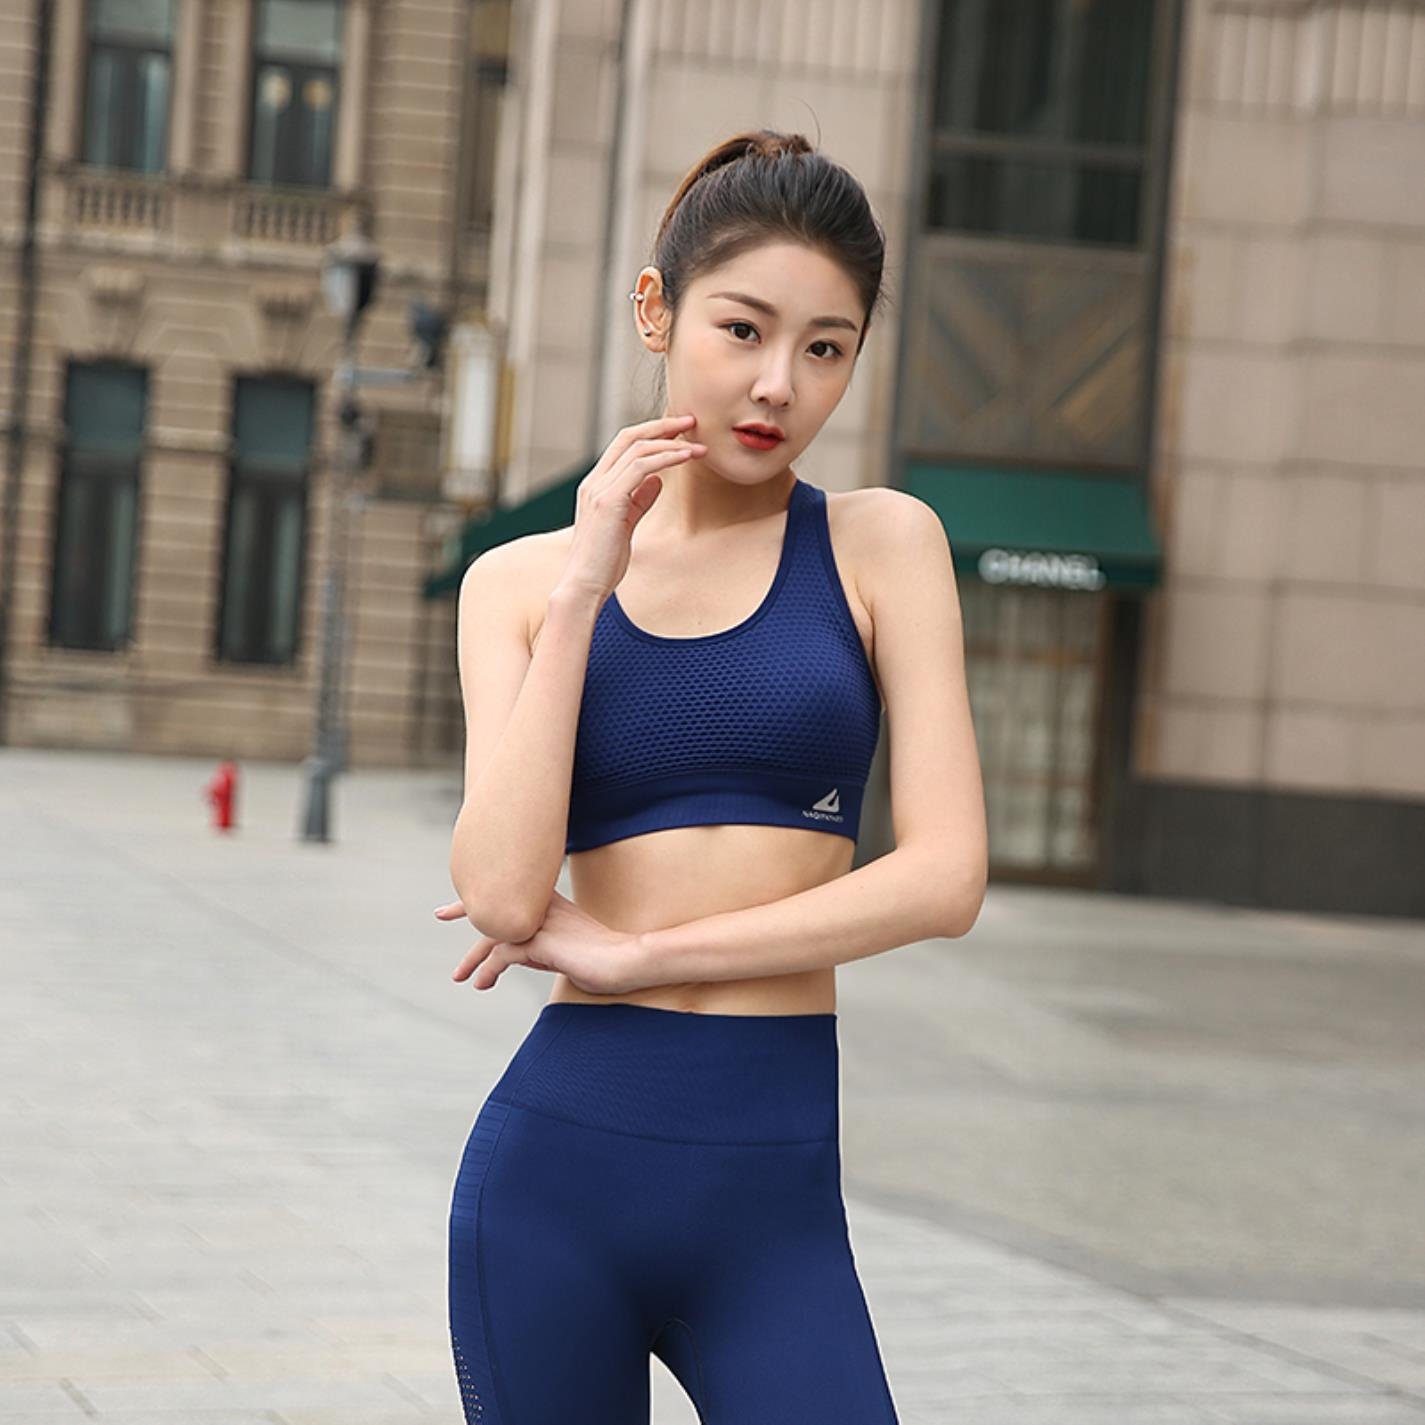 Women High Impact for Fitness Yoga Running Pad Top Sports Bra at Amazon Womens Clothing store: